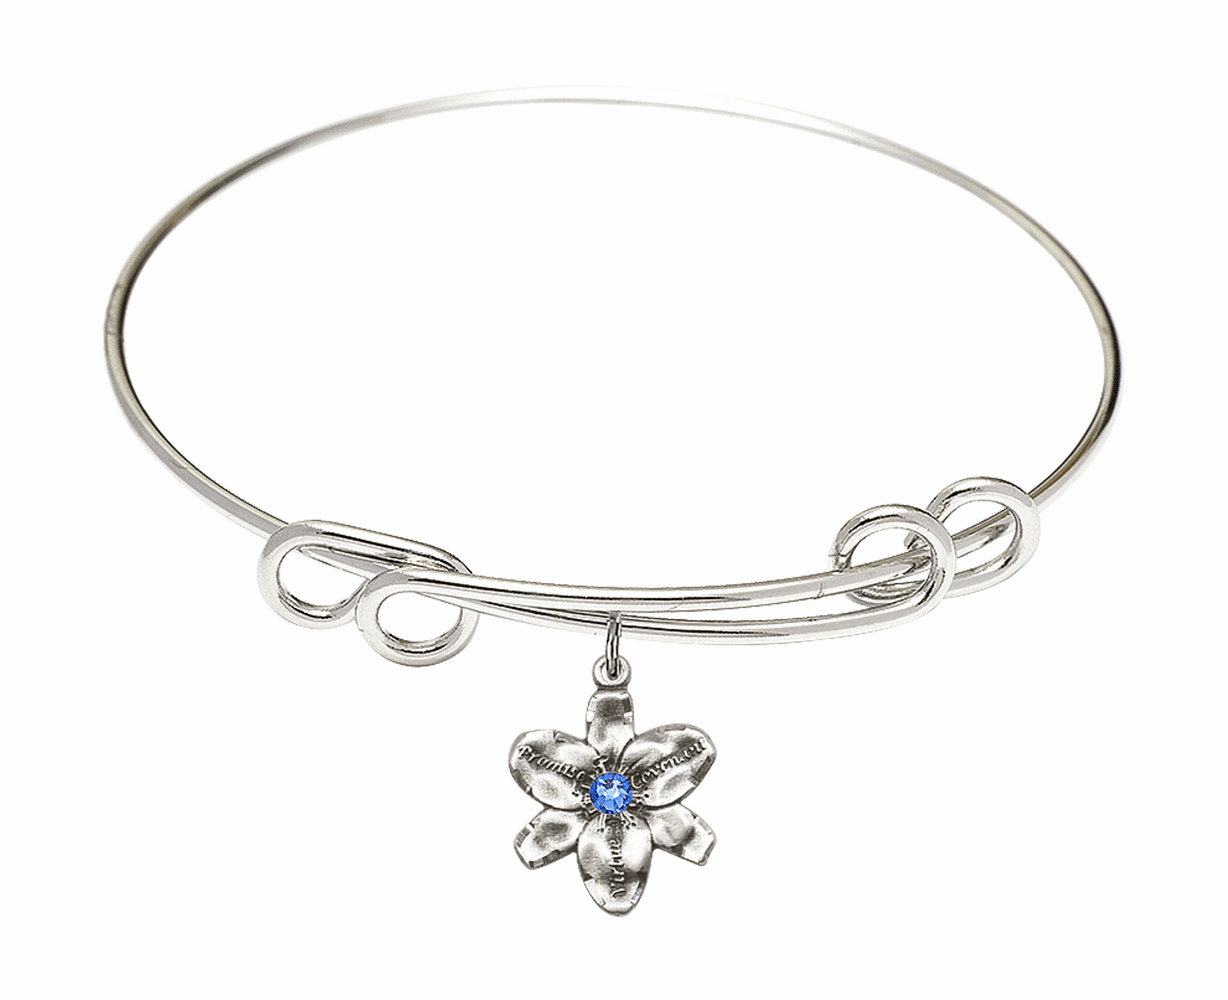 Silver Loop Chastity Flower Birthstone Charm Bangle Bracelet by Bliss